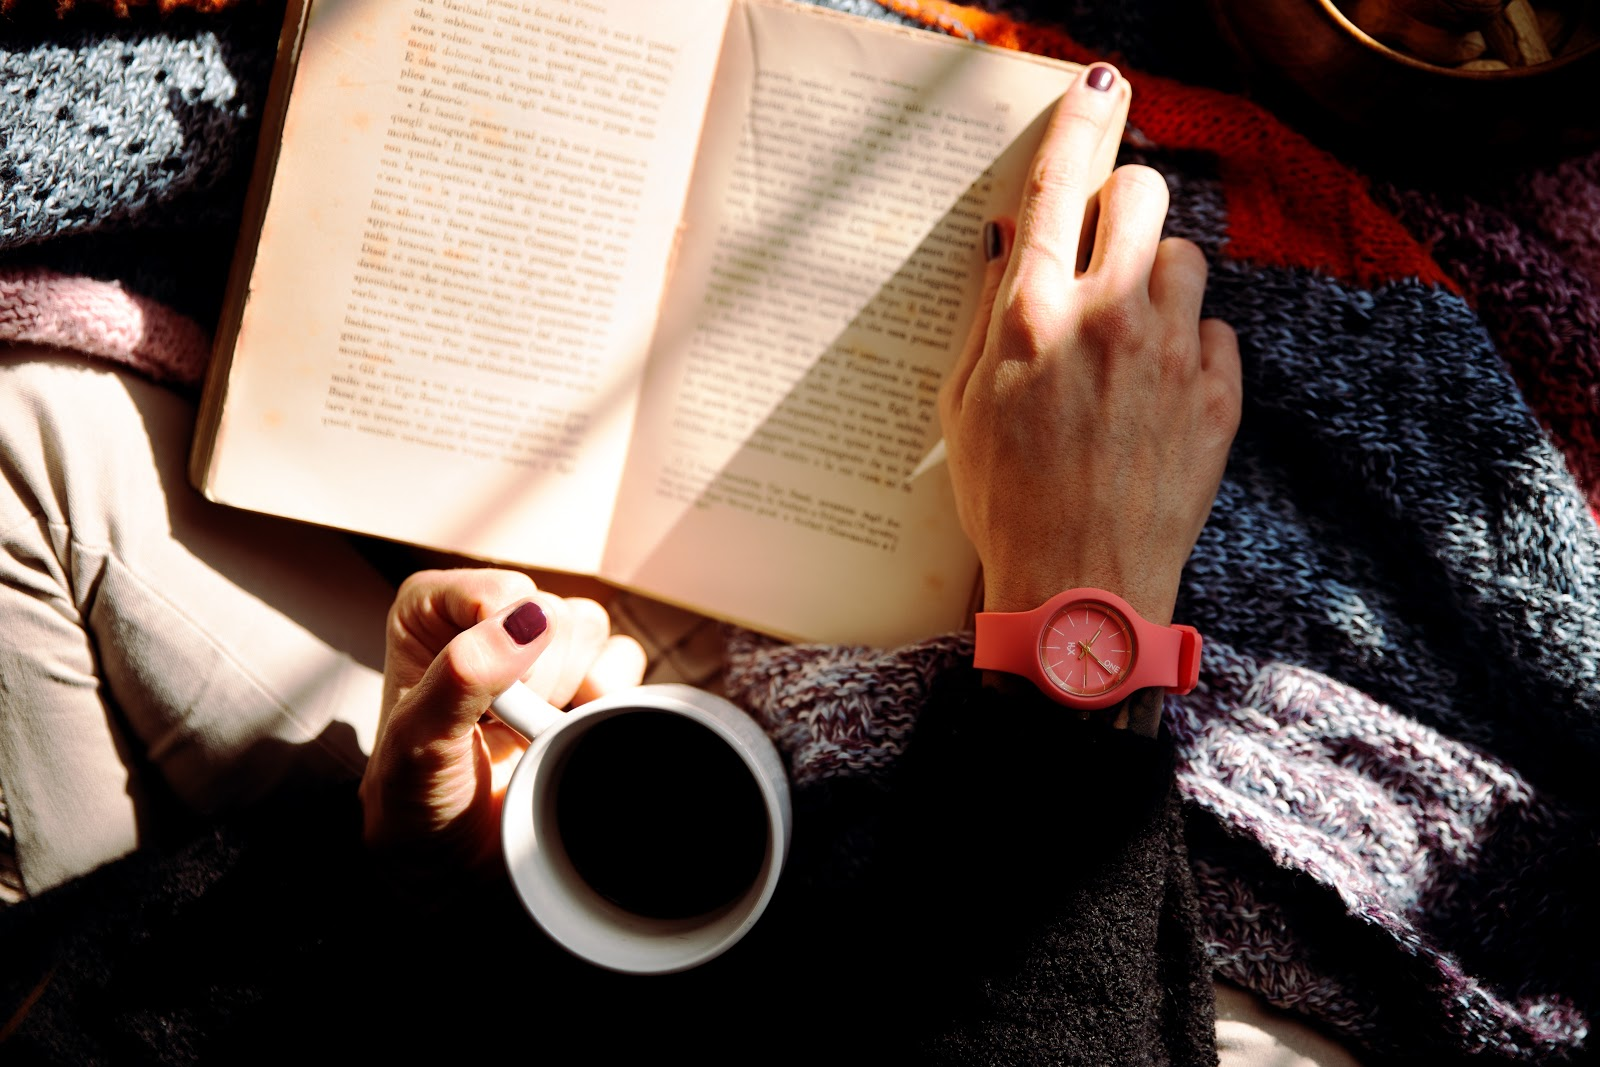 A person holds a cup of coffee while reading a book.